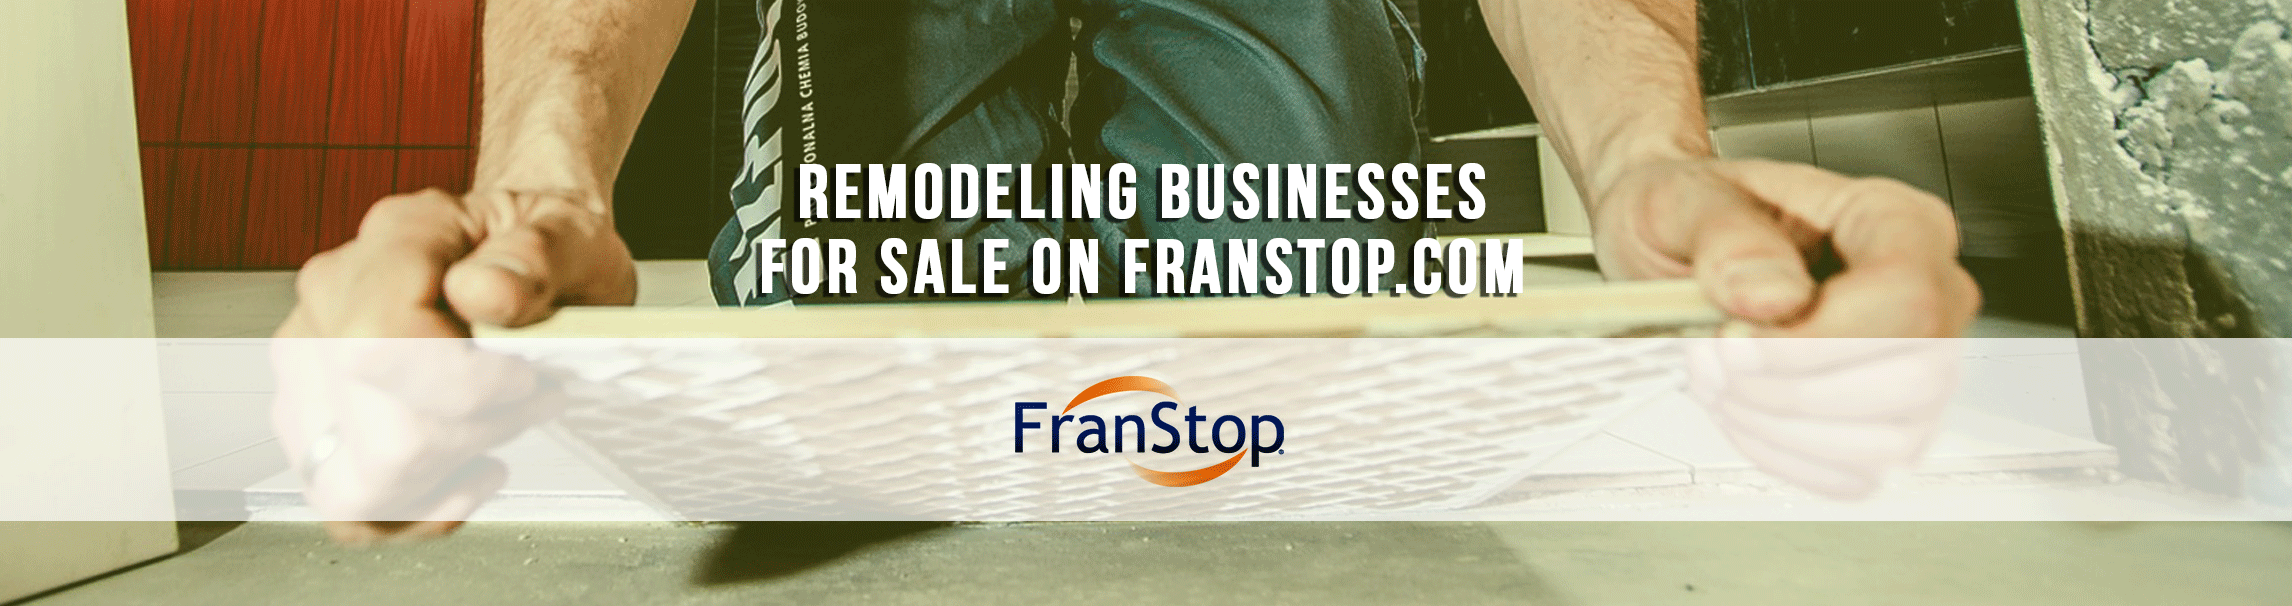 Search_Remodeling_Businesses_Franchise_Business_FranStop_franchise_for_sale